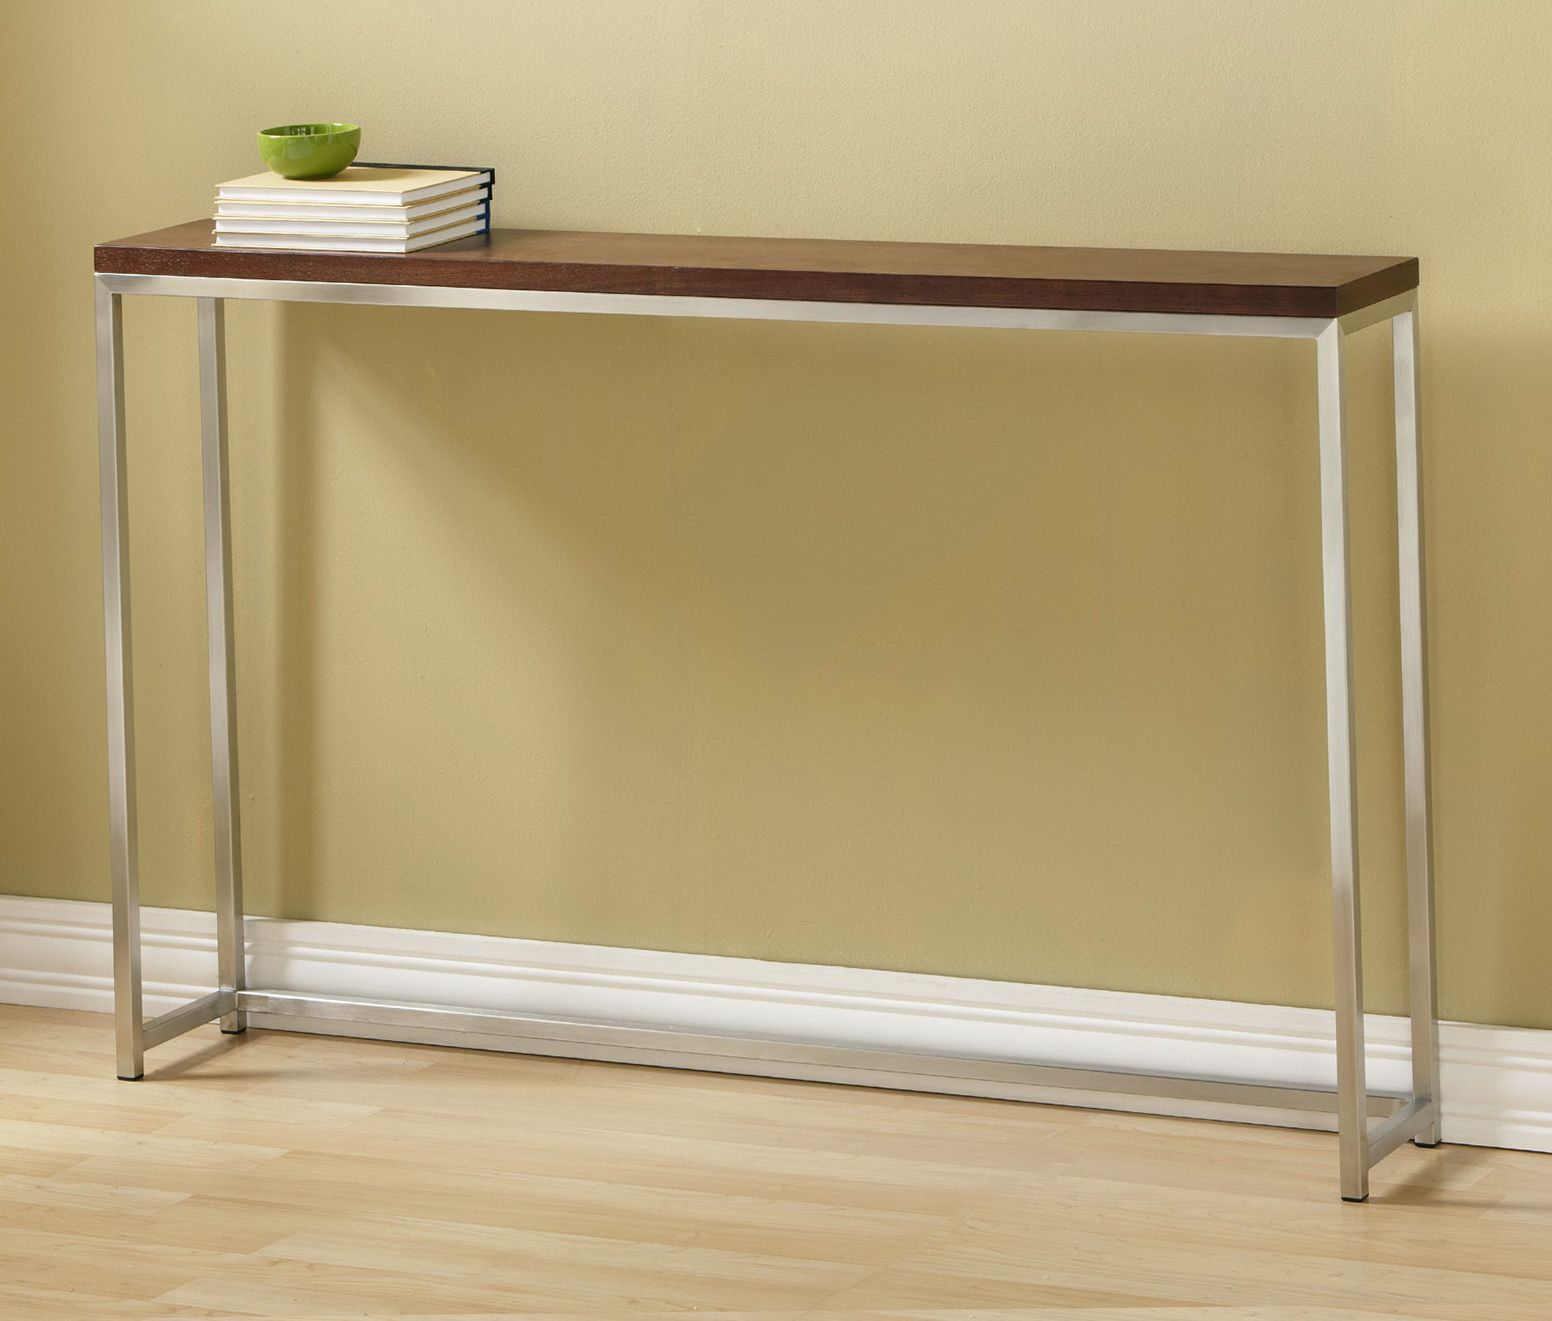 Narrow console table canada home design ideas entry table narrow console table canada home design ideas geotapseo Image collections